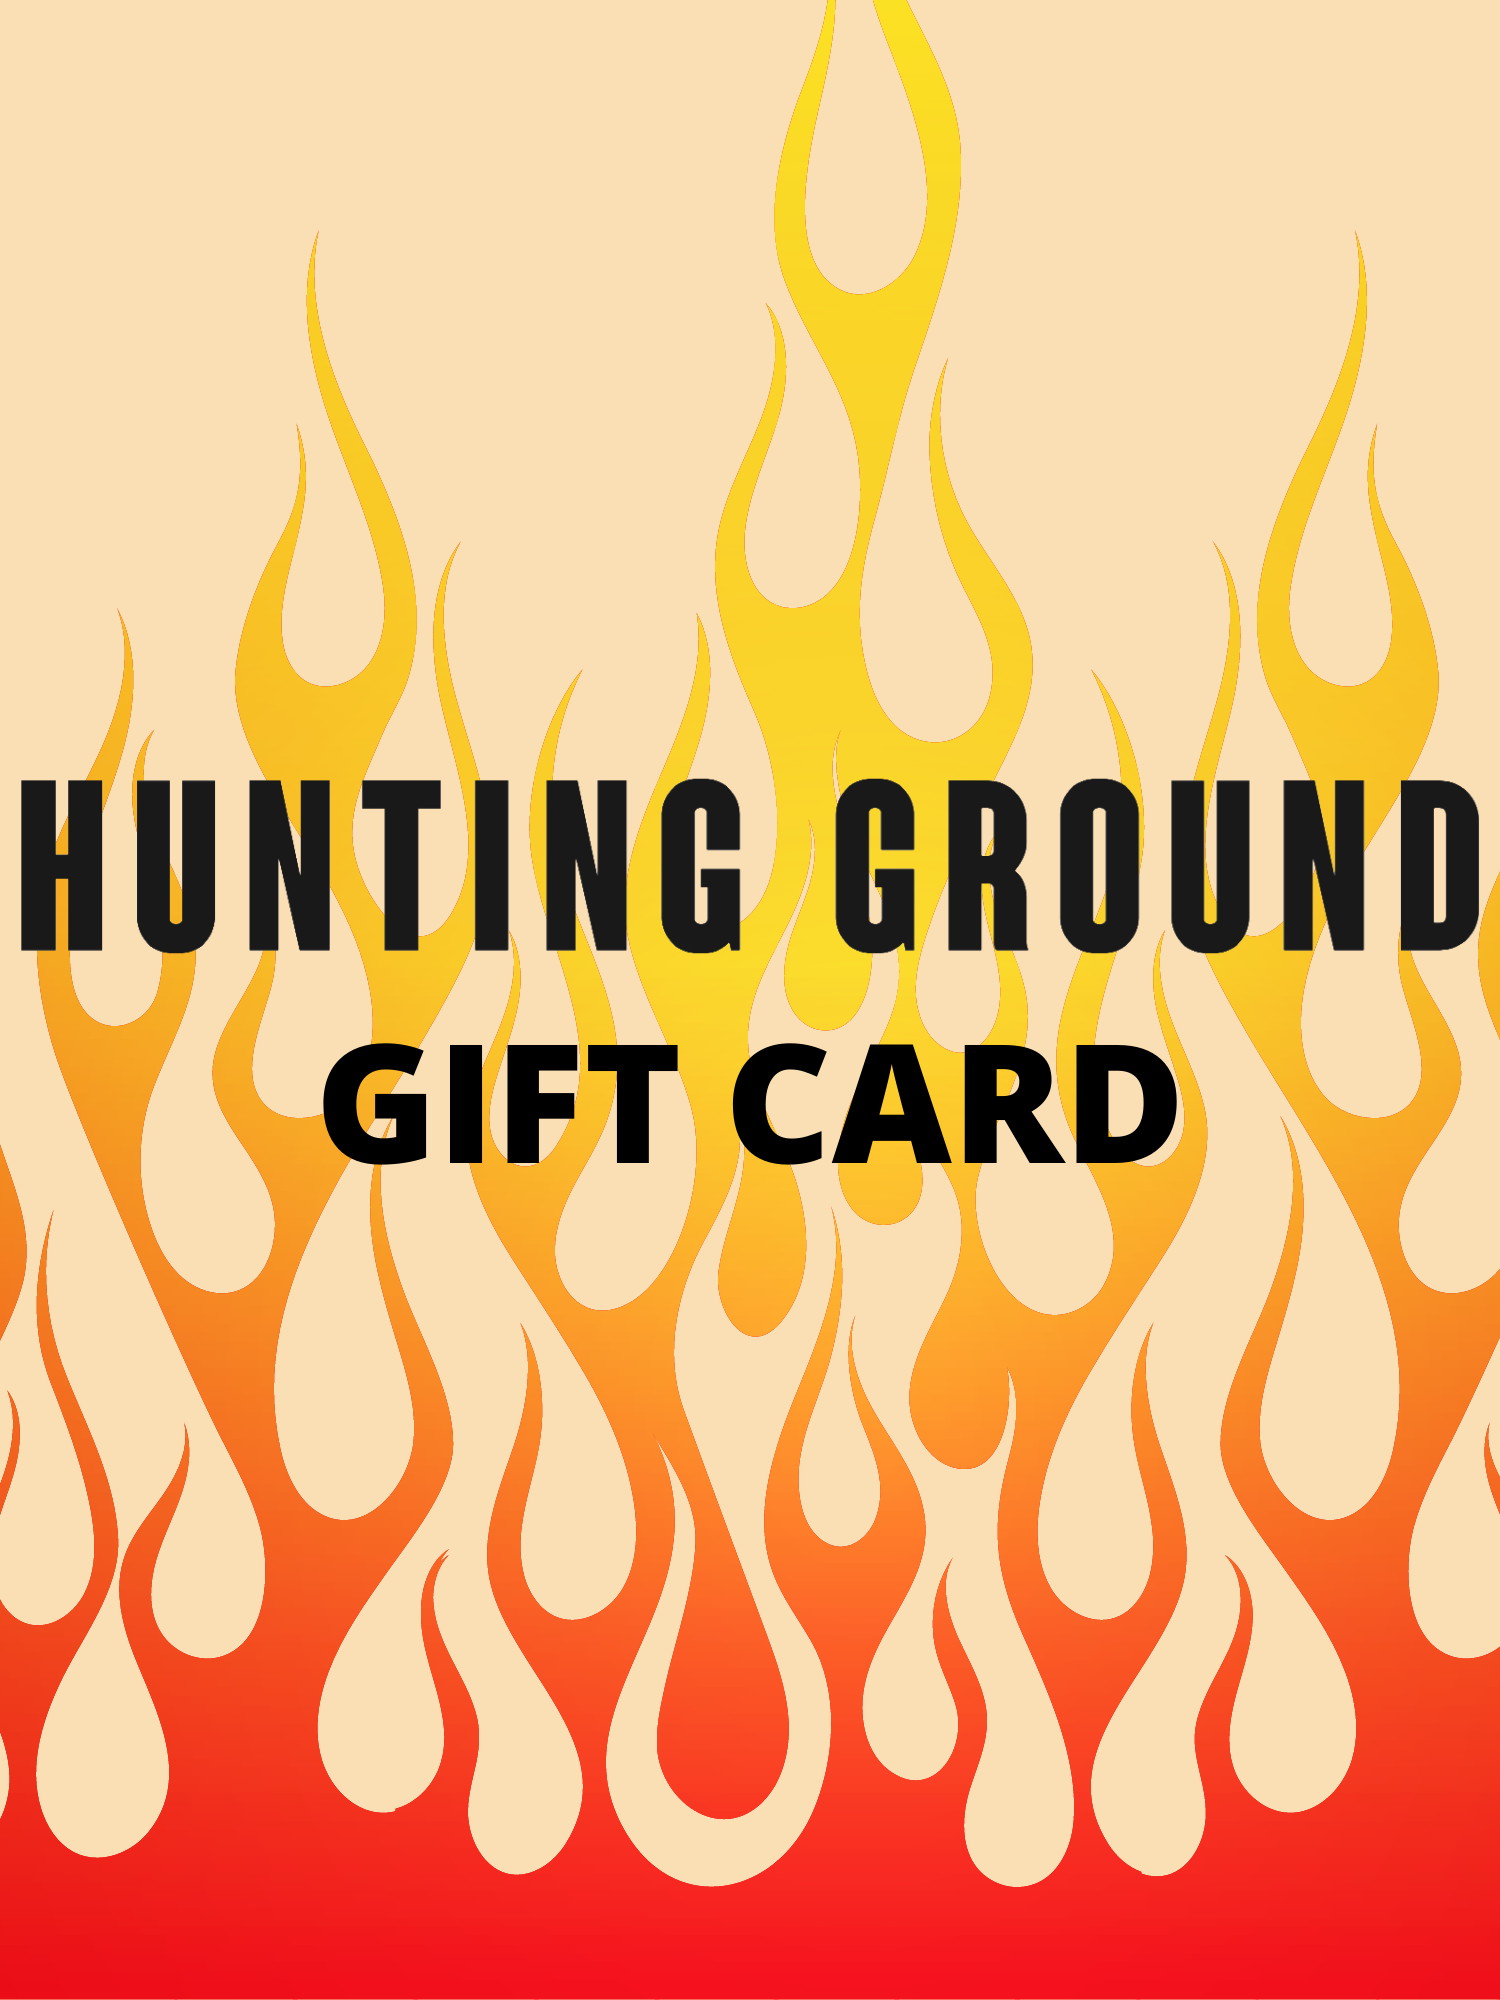 HUNTING GROUND GIFT CARD